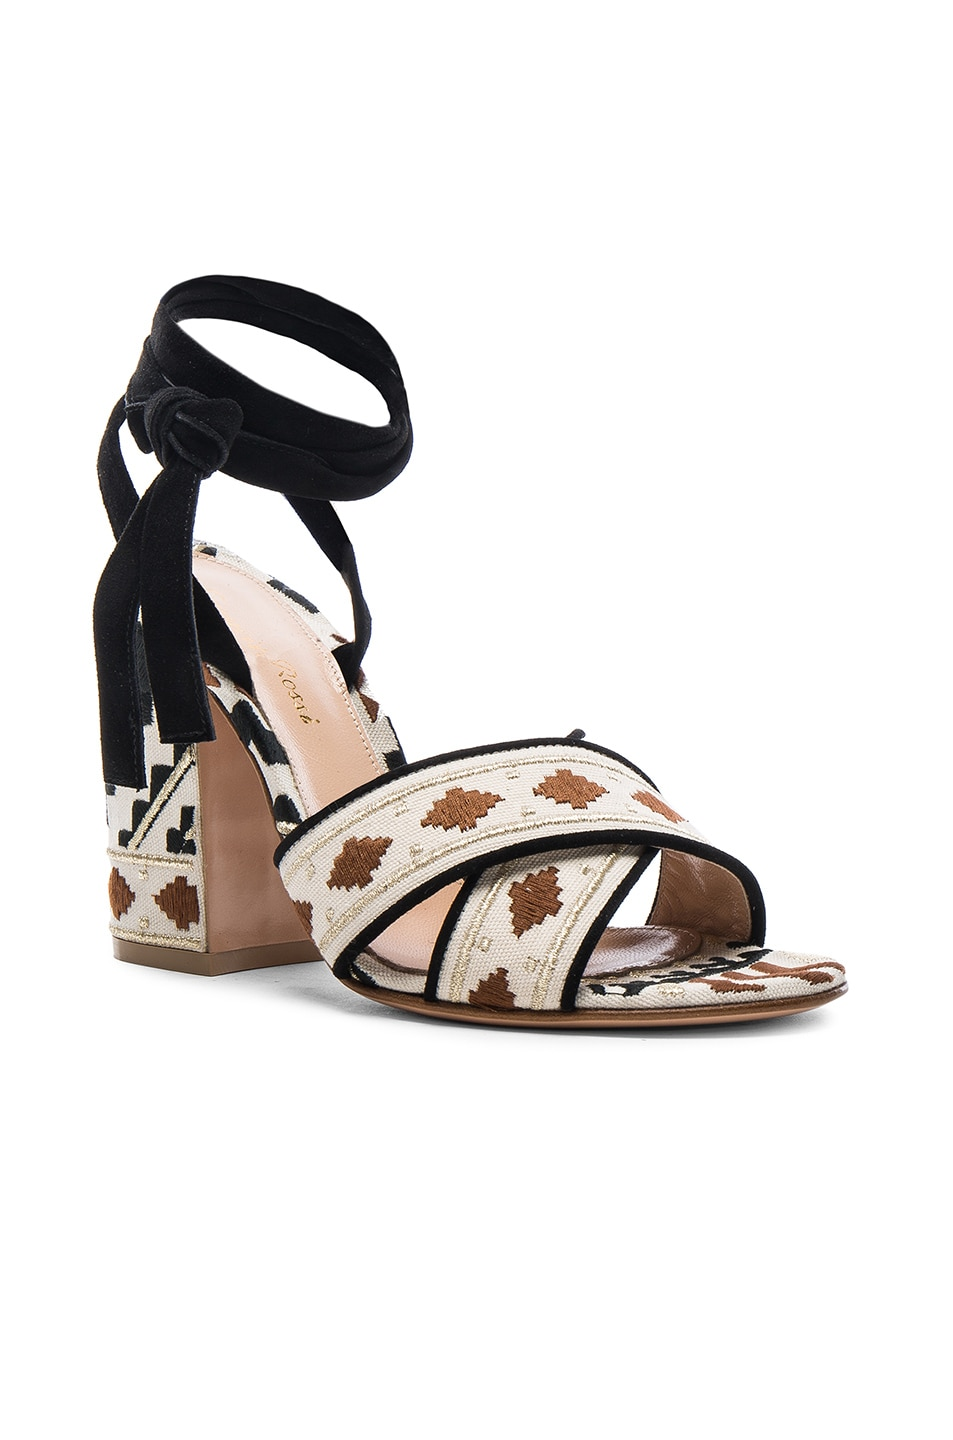 Image 2 of Gianvito Rossi Cheyenne Printed Heels in Black